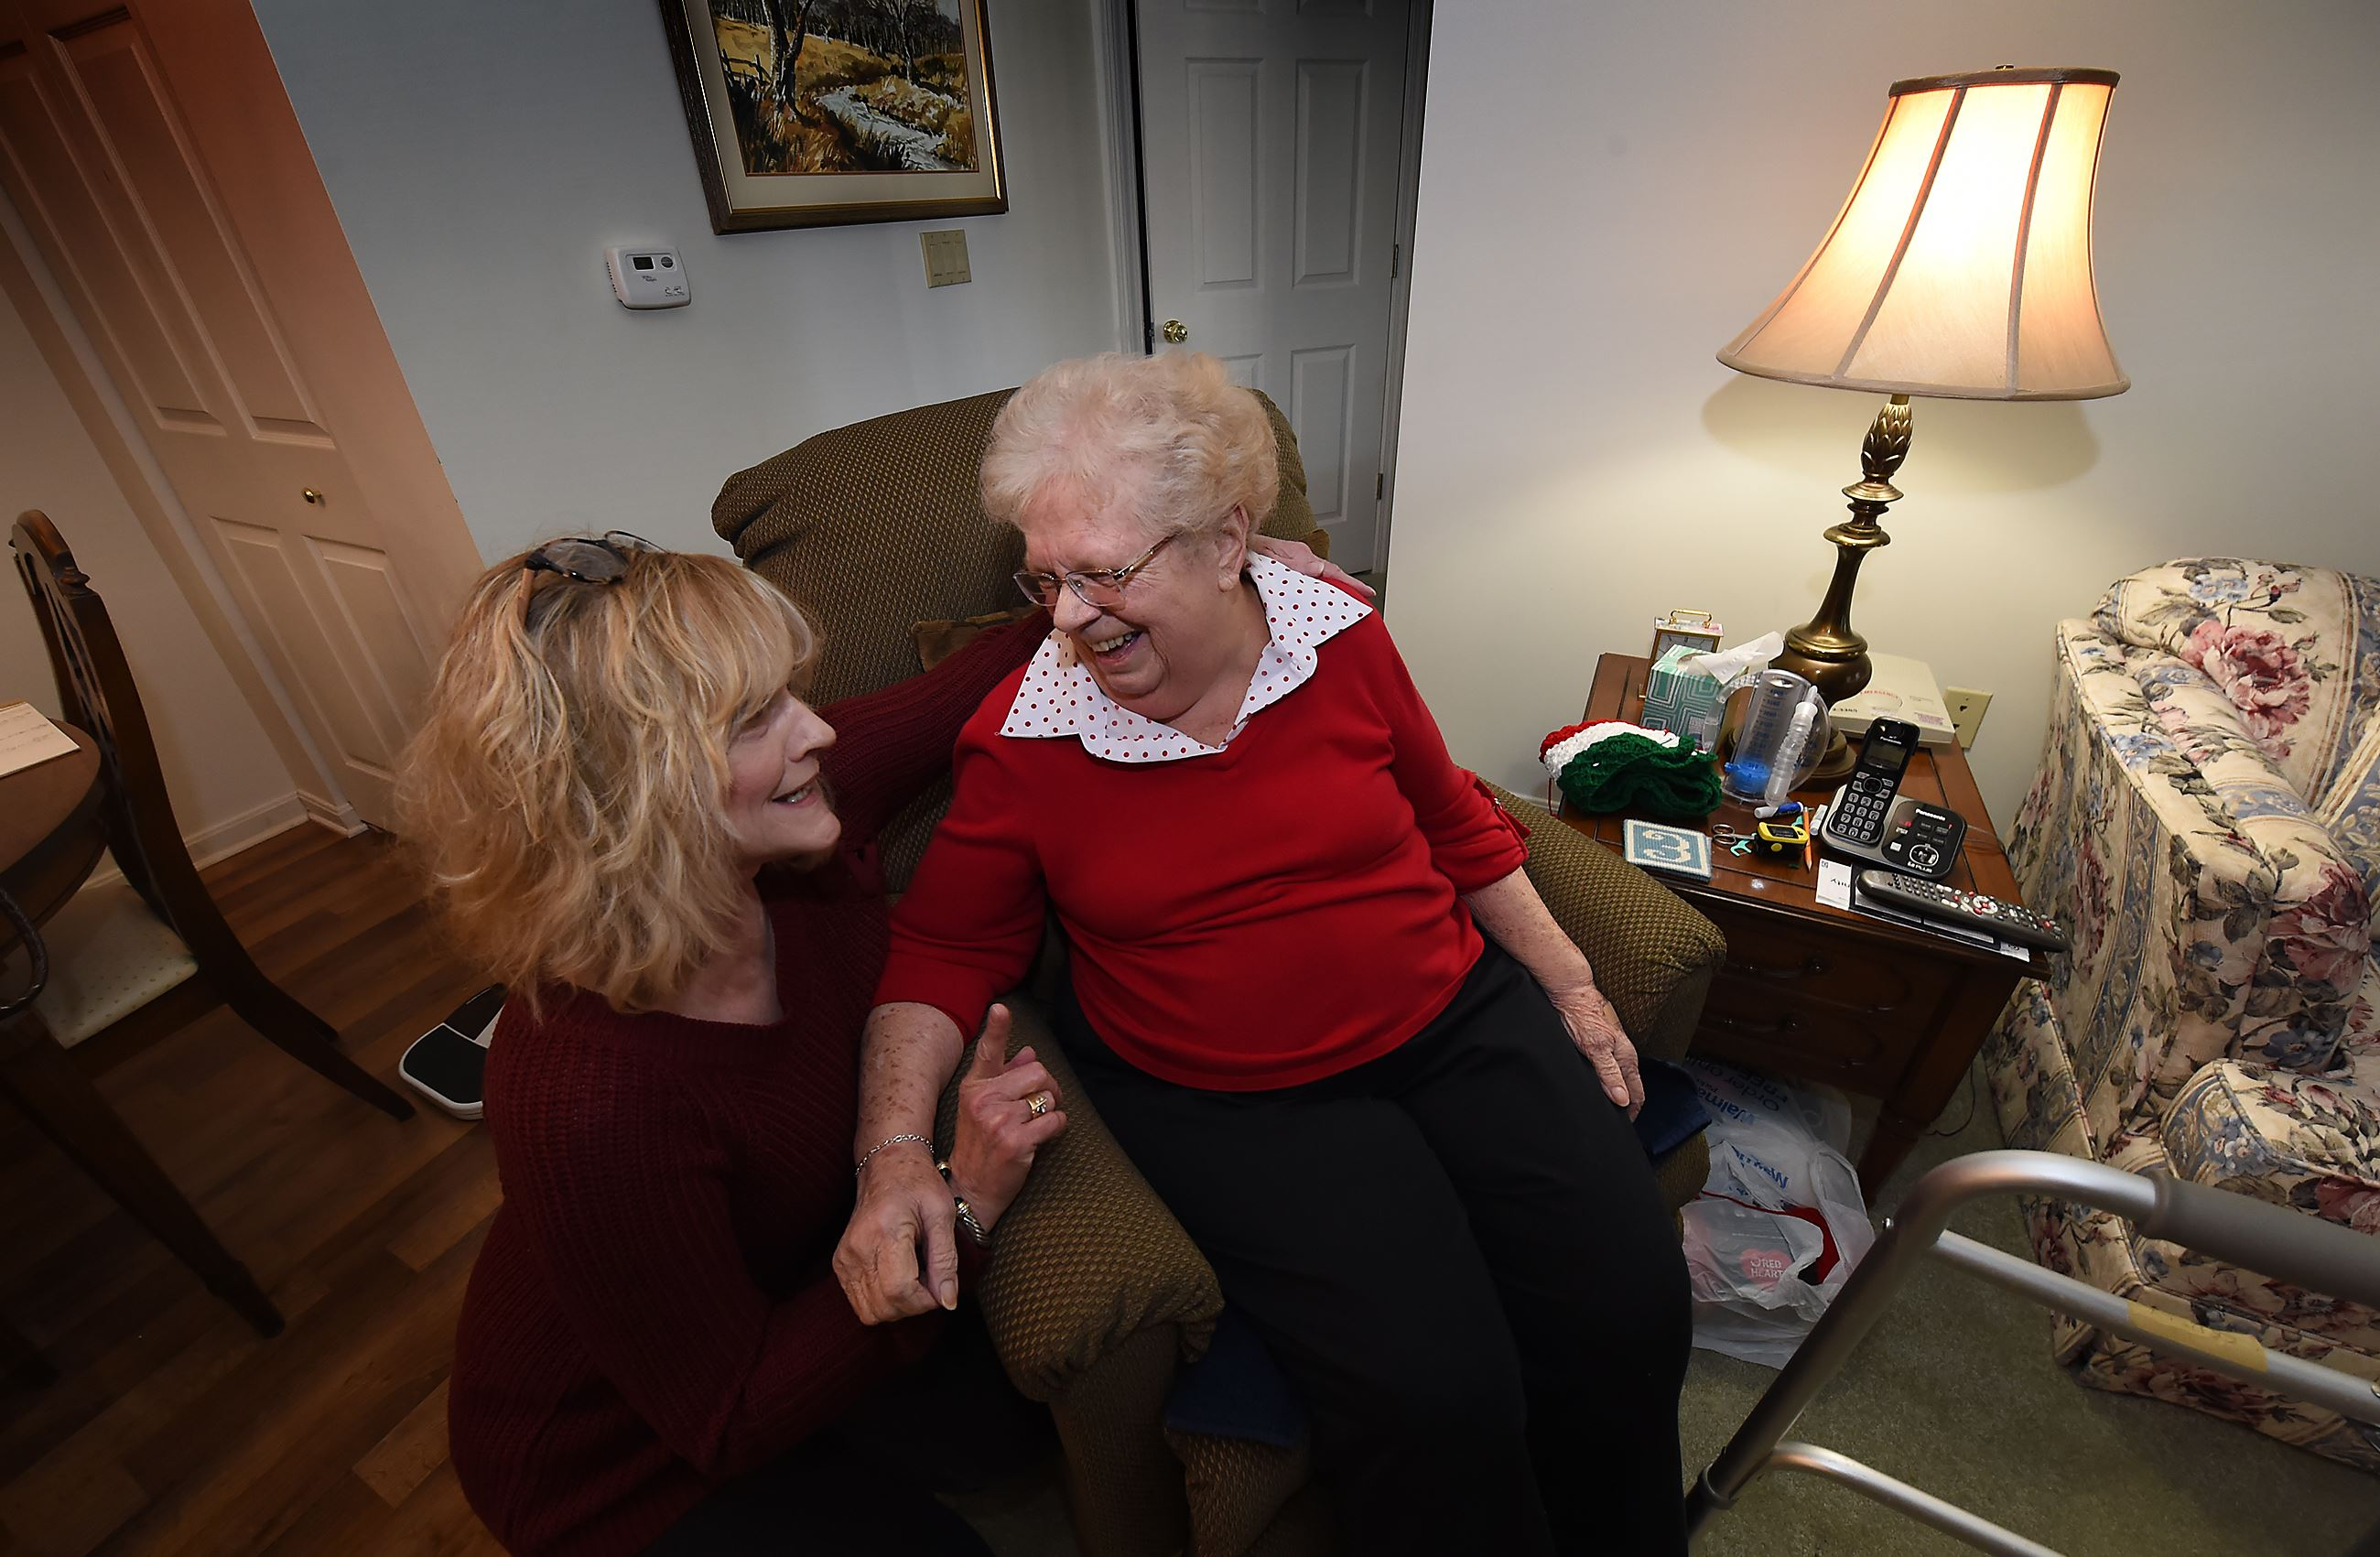 20170316pdHealthCare02-1 Cindy McDonald, an aide with Sunny Days In-Home Care, shares a laugh with Betty Erdely in Ms. Erdely's Bethel Park home.